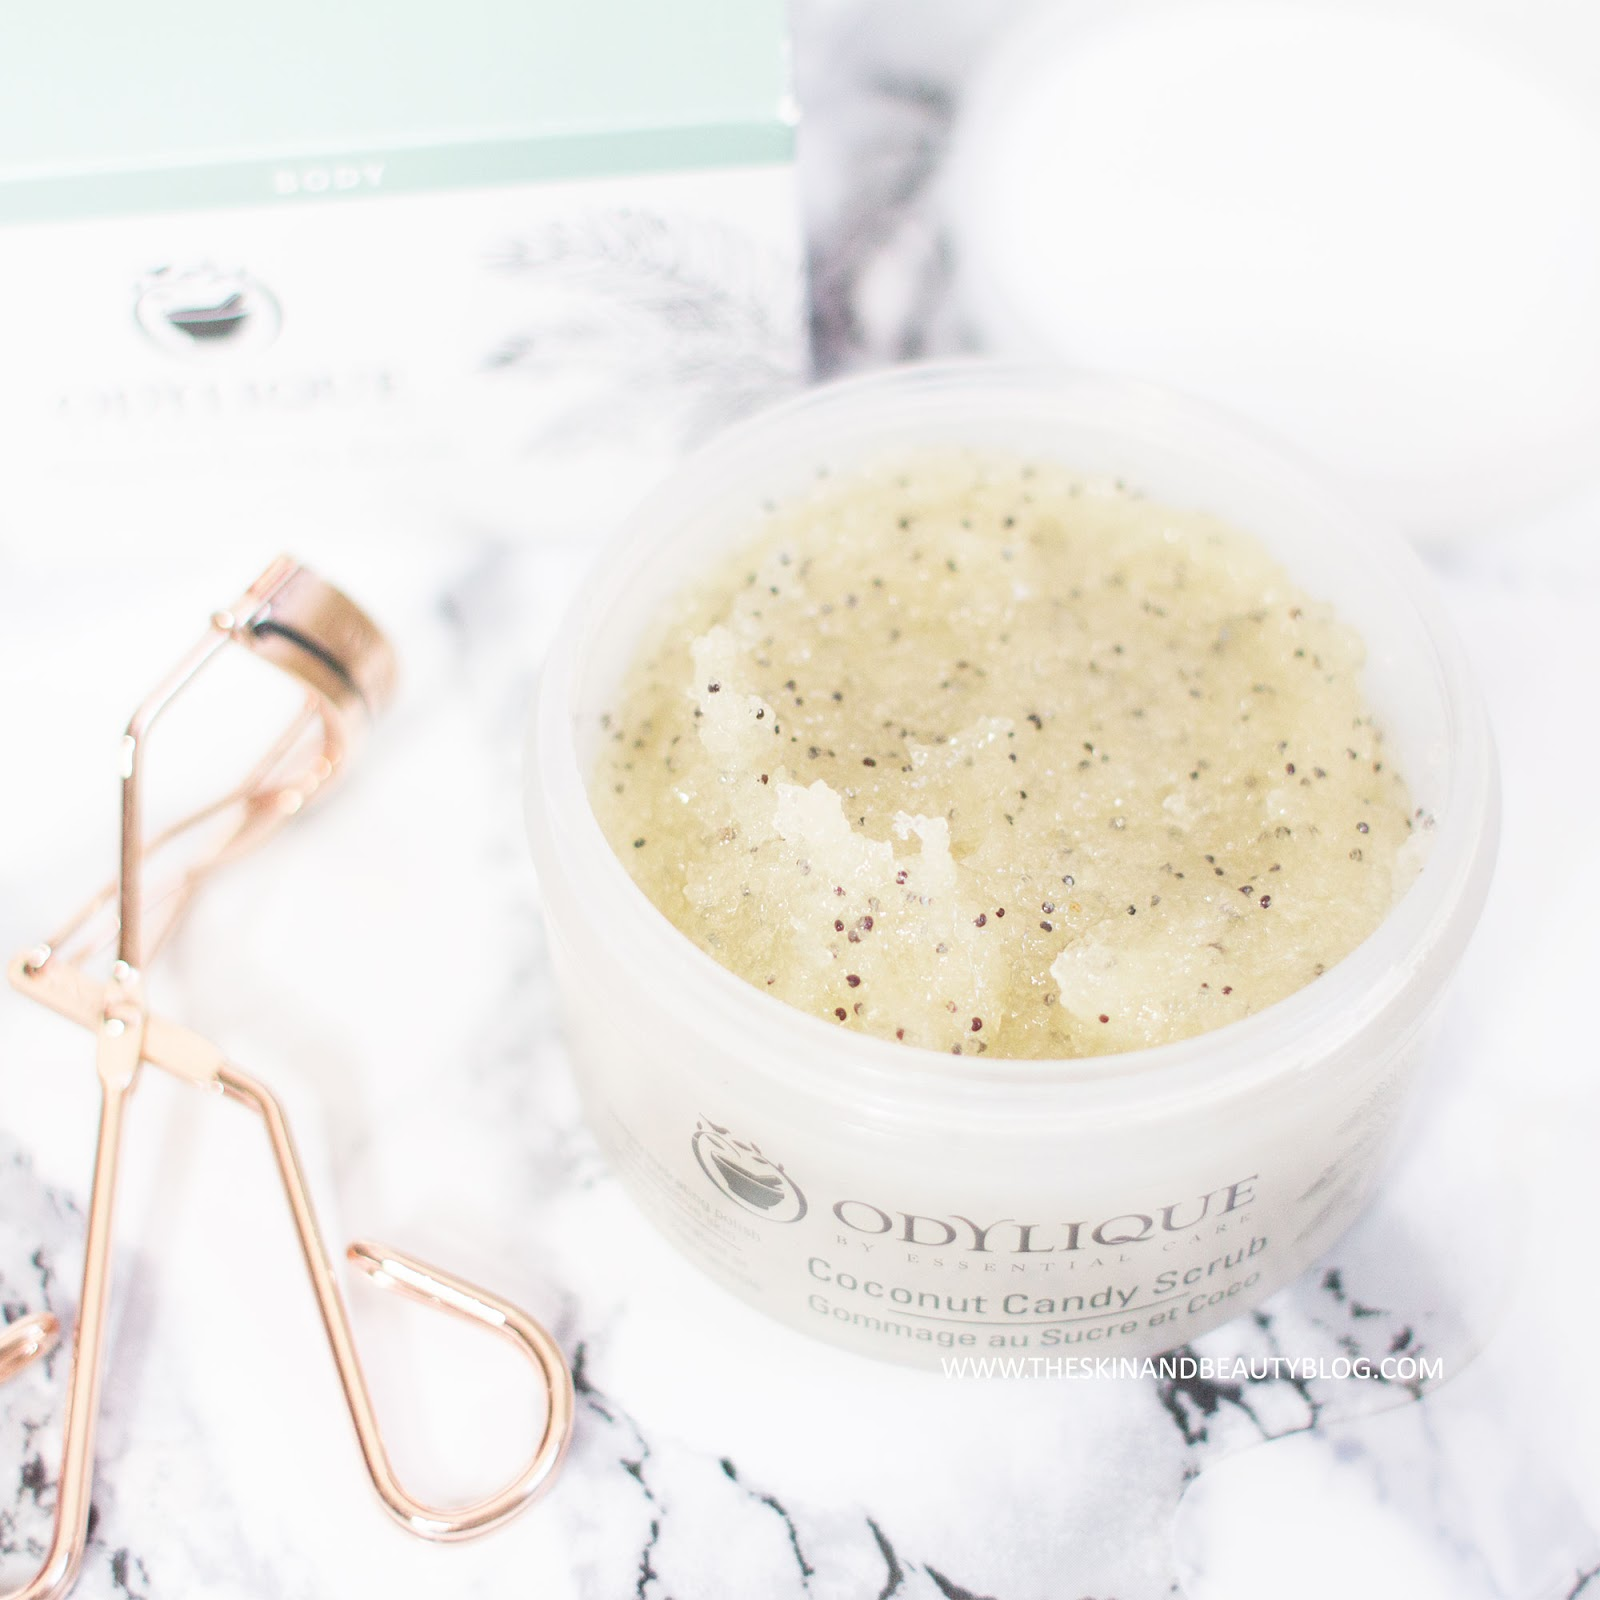 Odylique Organic Coconut Candy Scrub Review